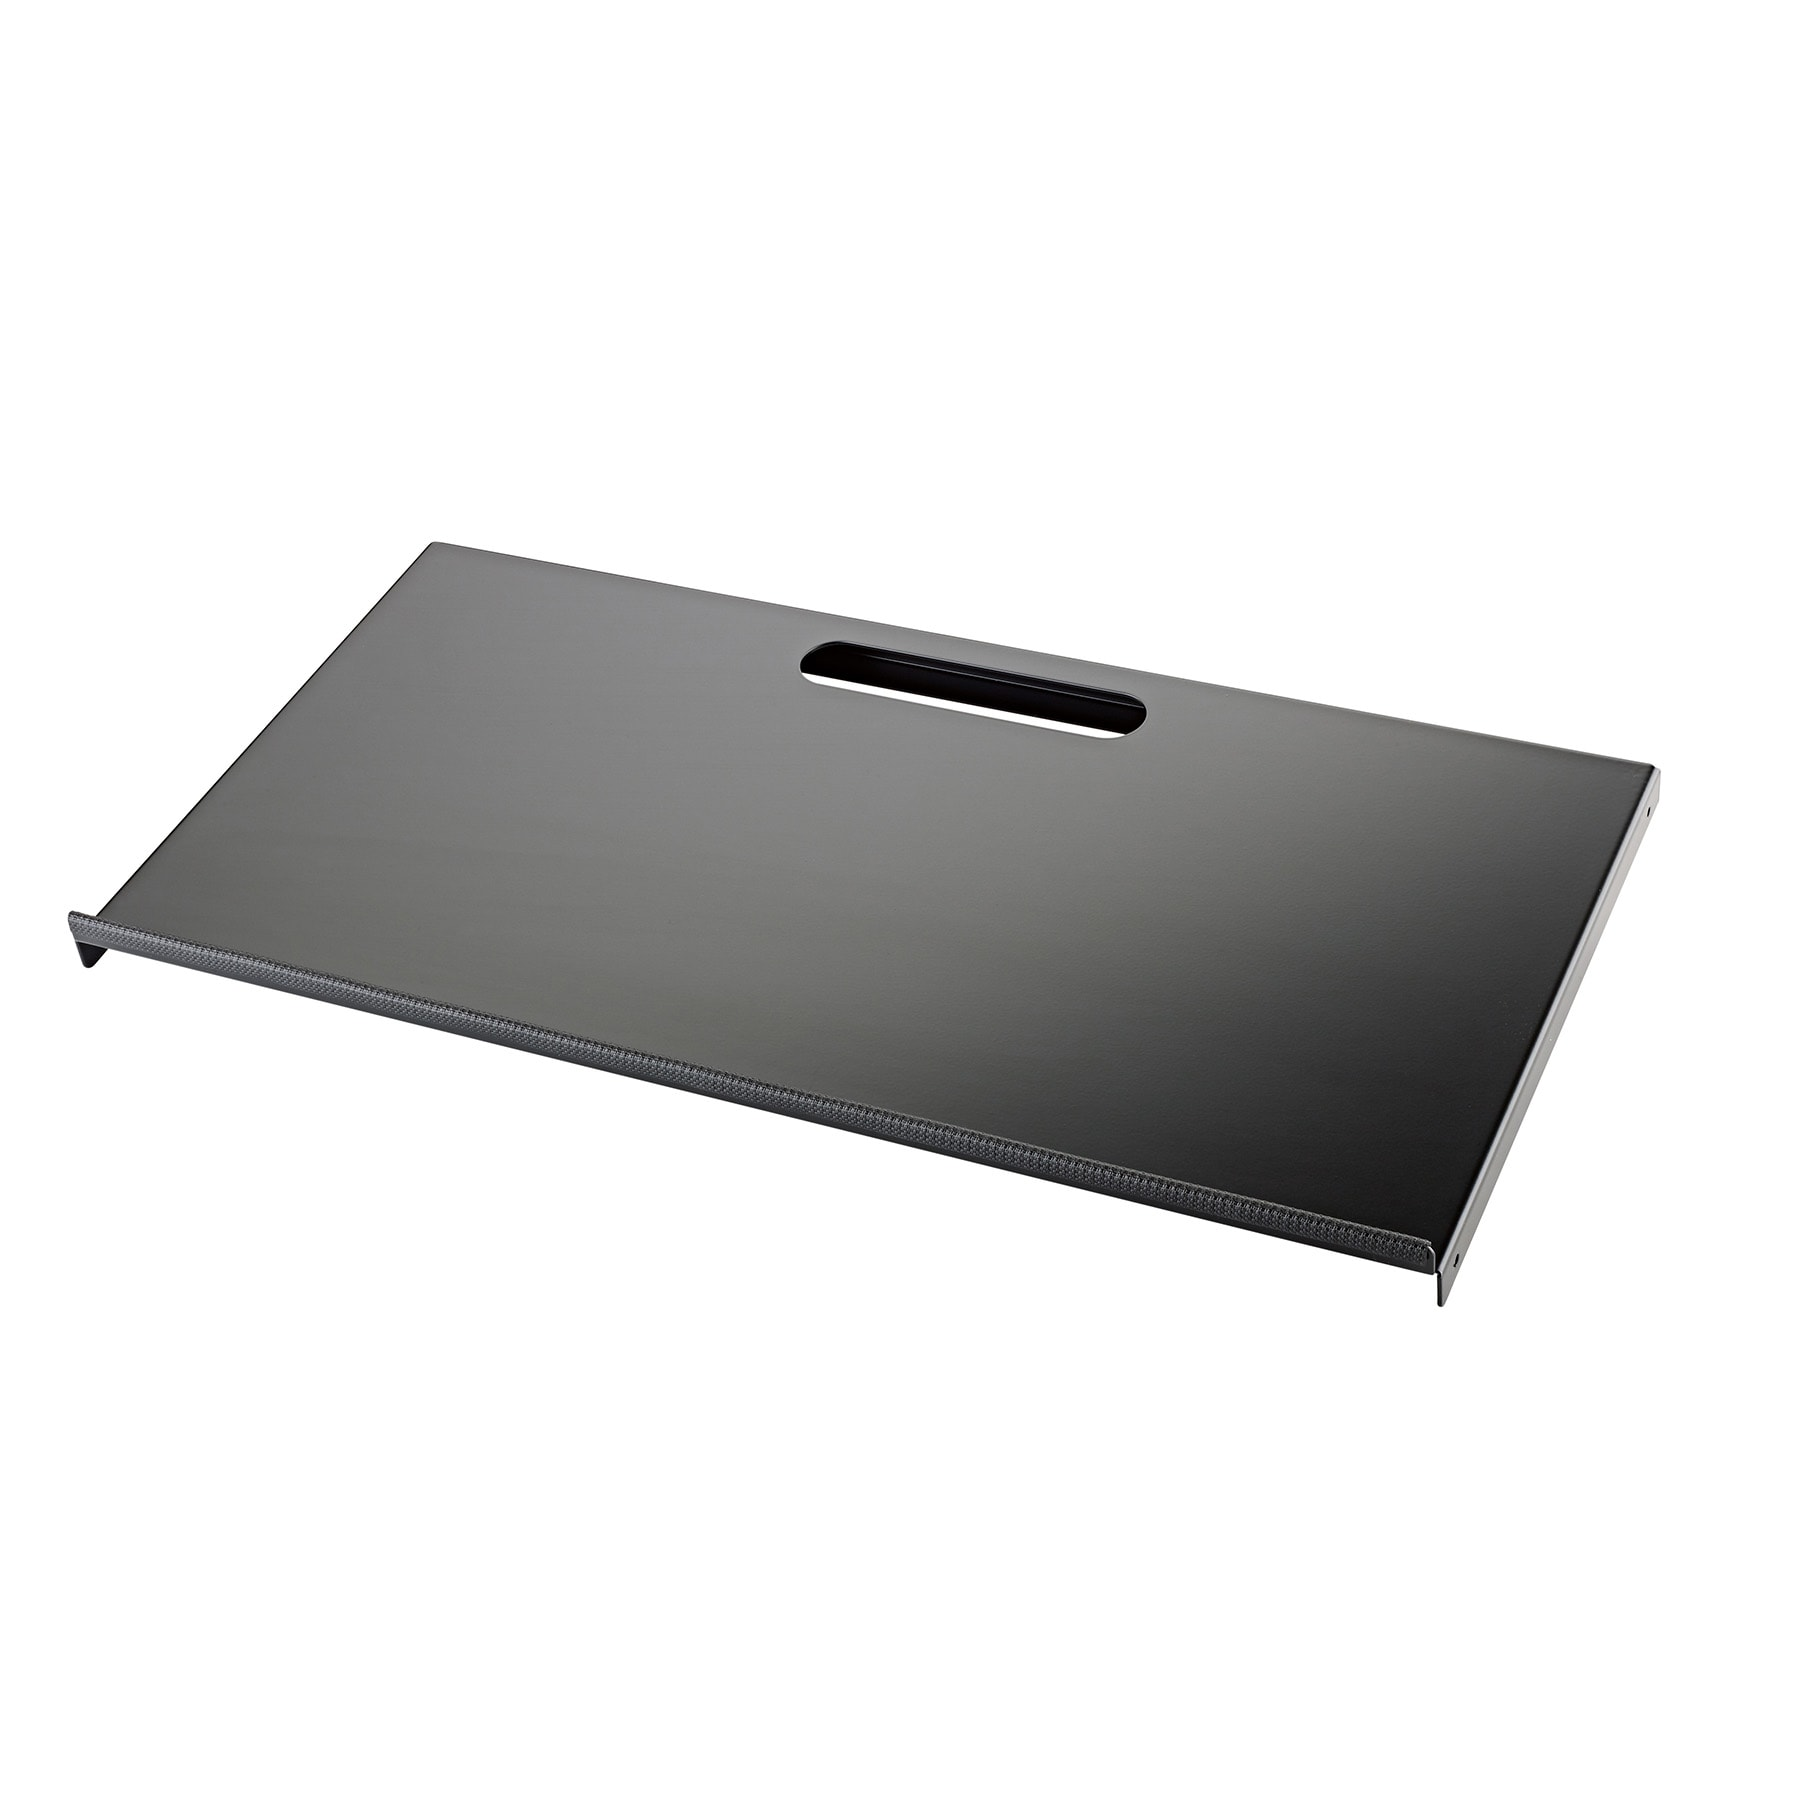 KM18819 - Controller keyboard tray